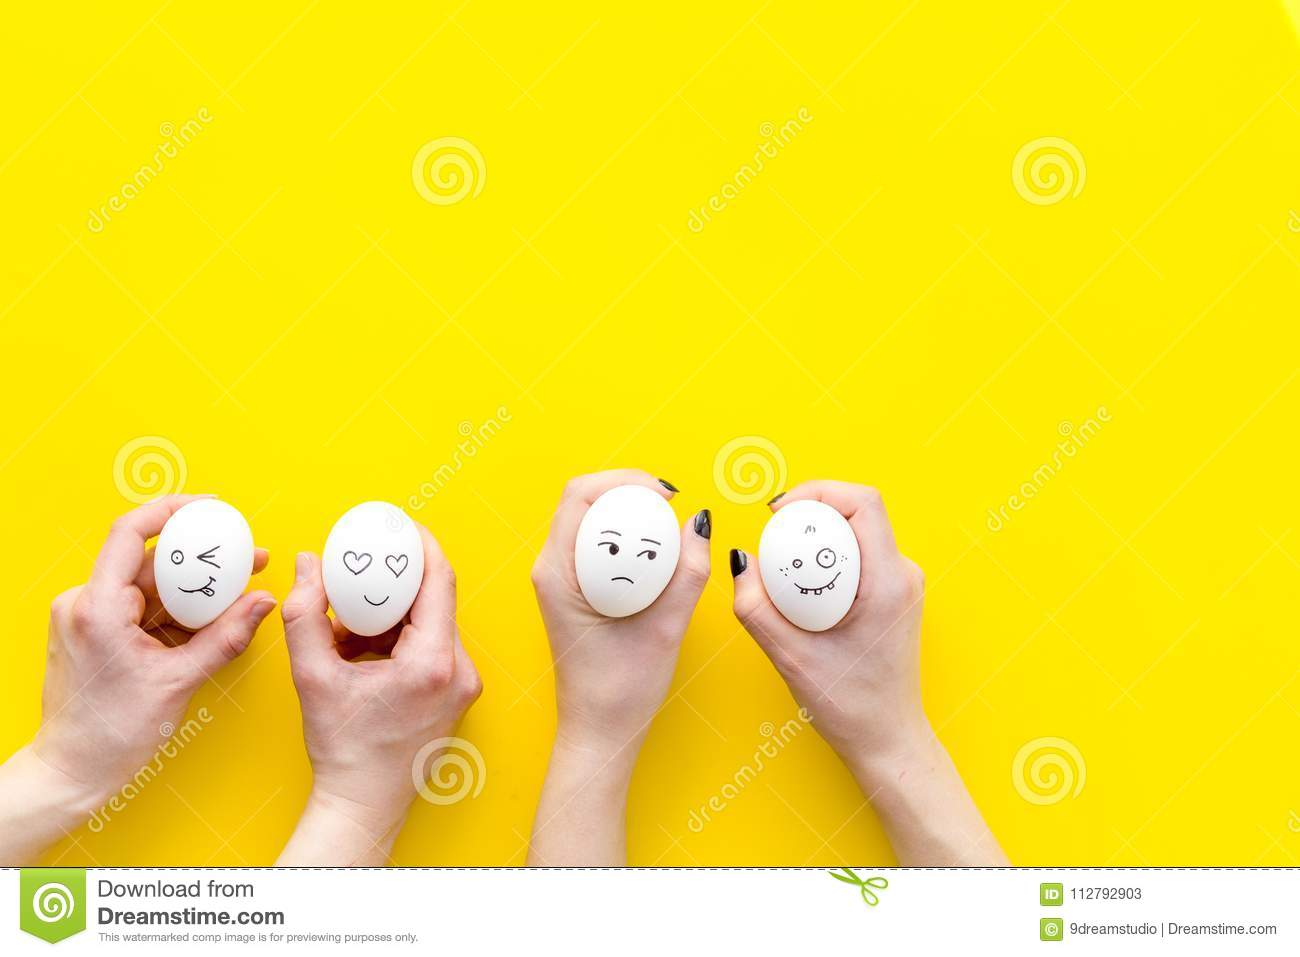 Emotions In Communication At Social Media Faces Drawn On Eggs